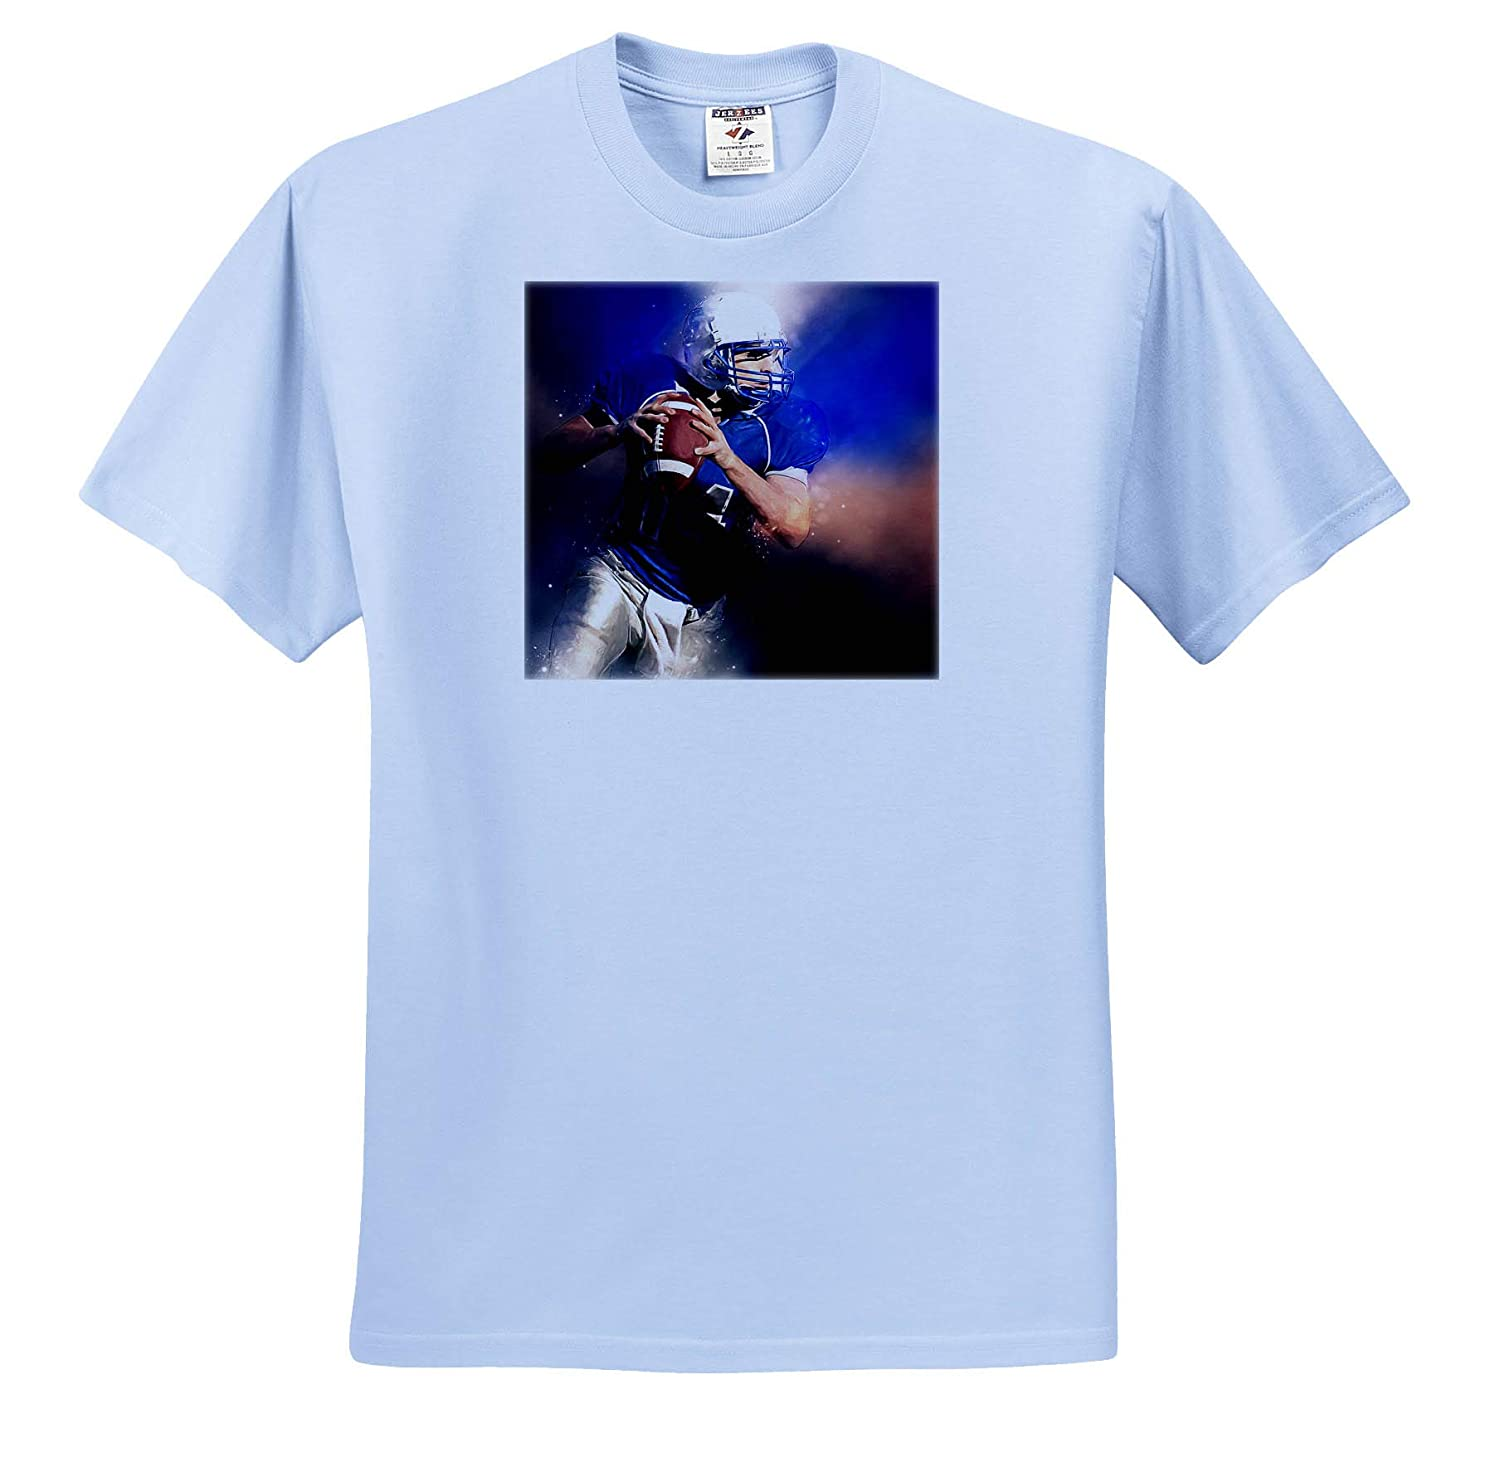 Football Player Painting in Shades of Blue and Brown for Sports Lovers T-Shirts 3dRose Doreen Erhardt Sports and Hobbies